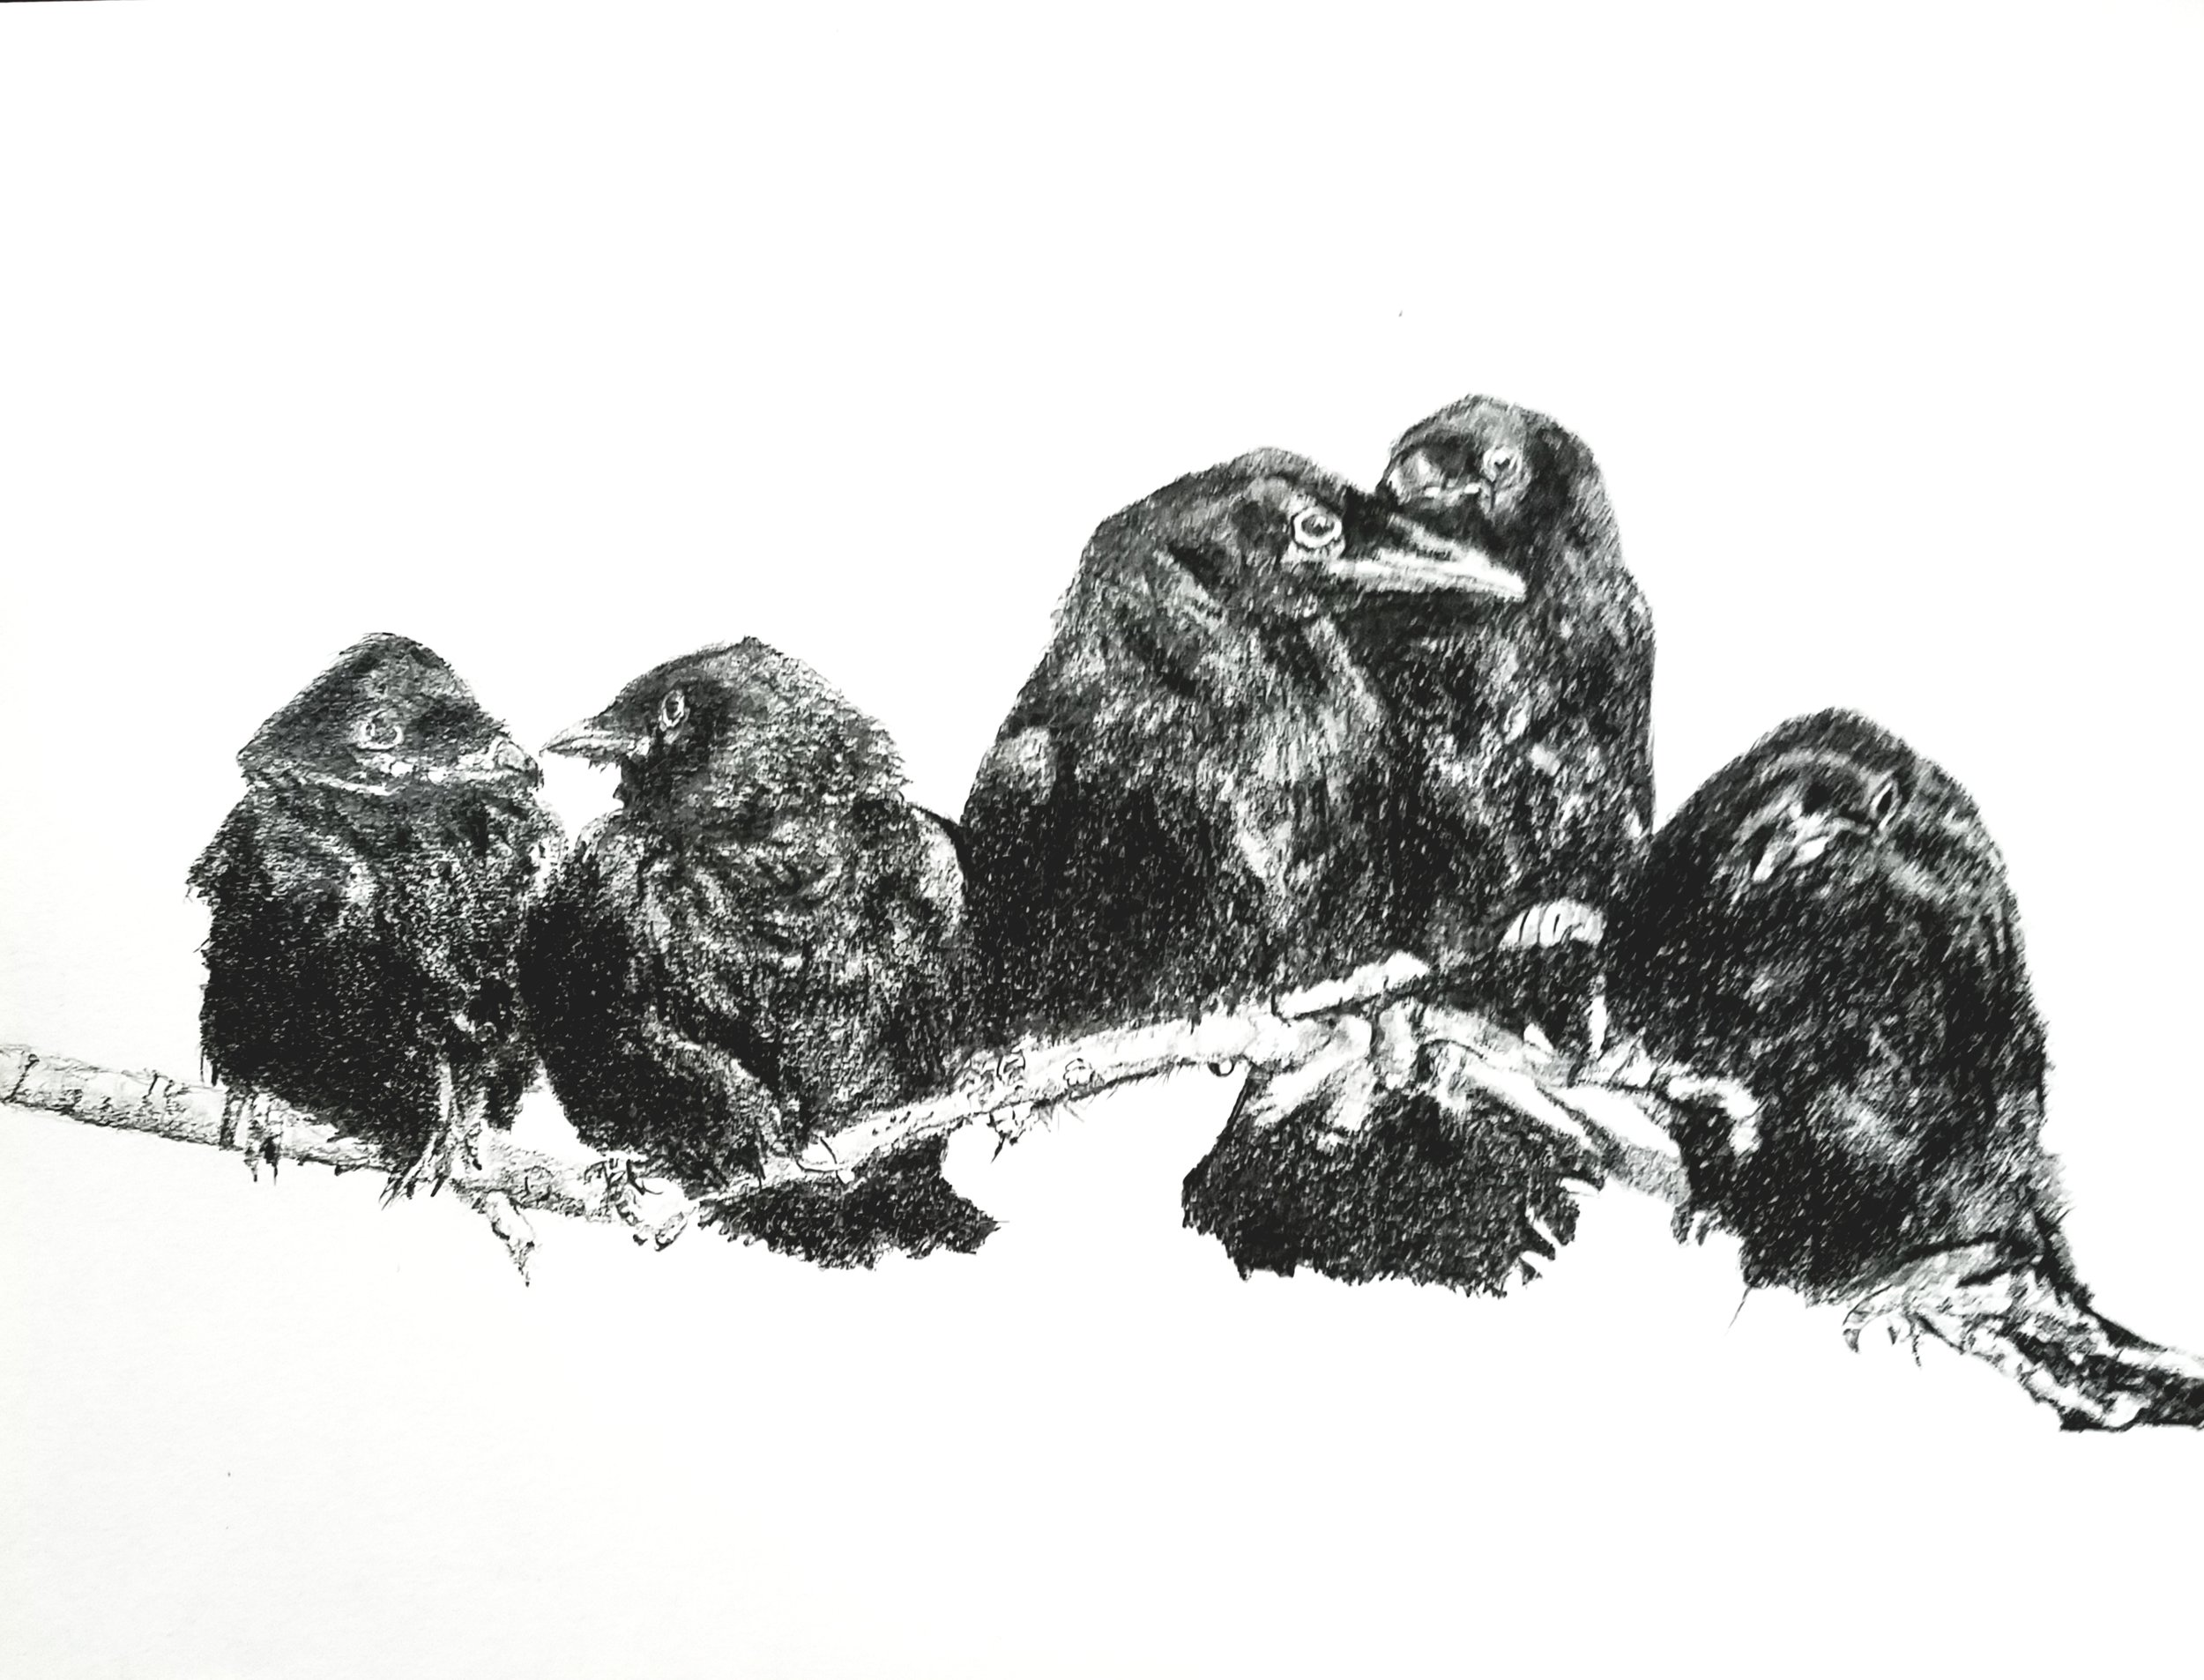 Crows on a branch; graphite; 2018